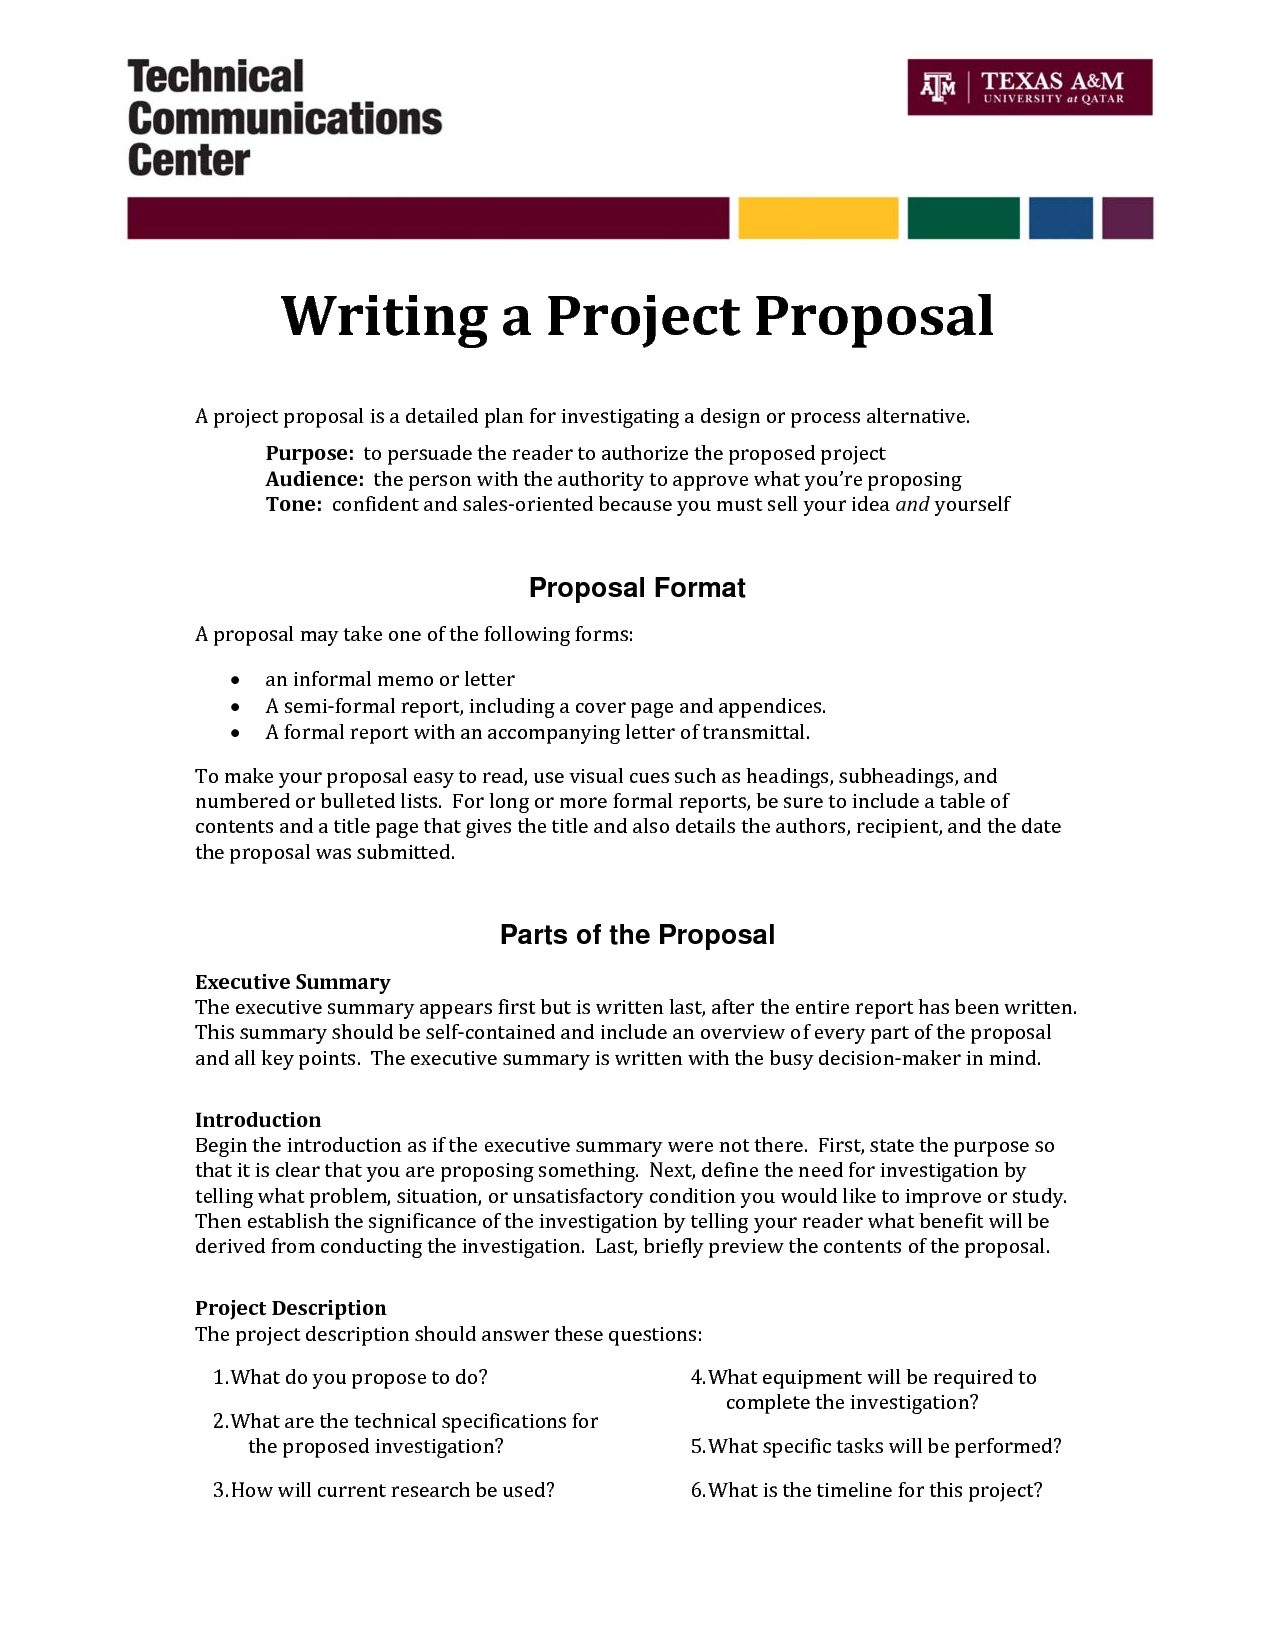 Informal proposal letter example writing a project for Software project proposal template word